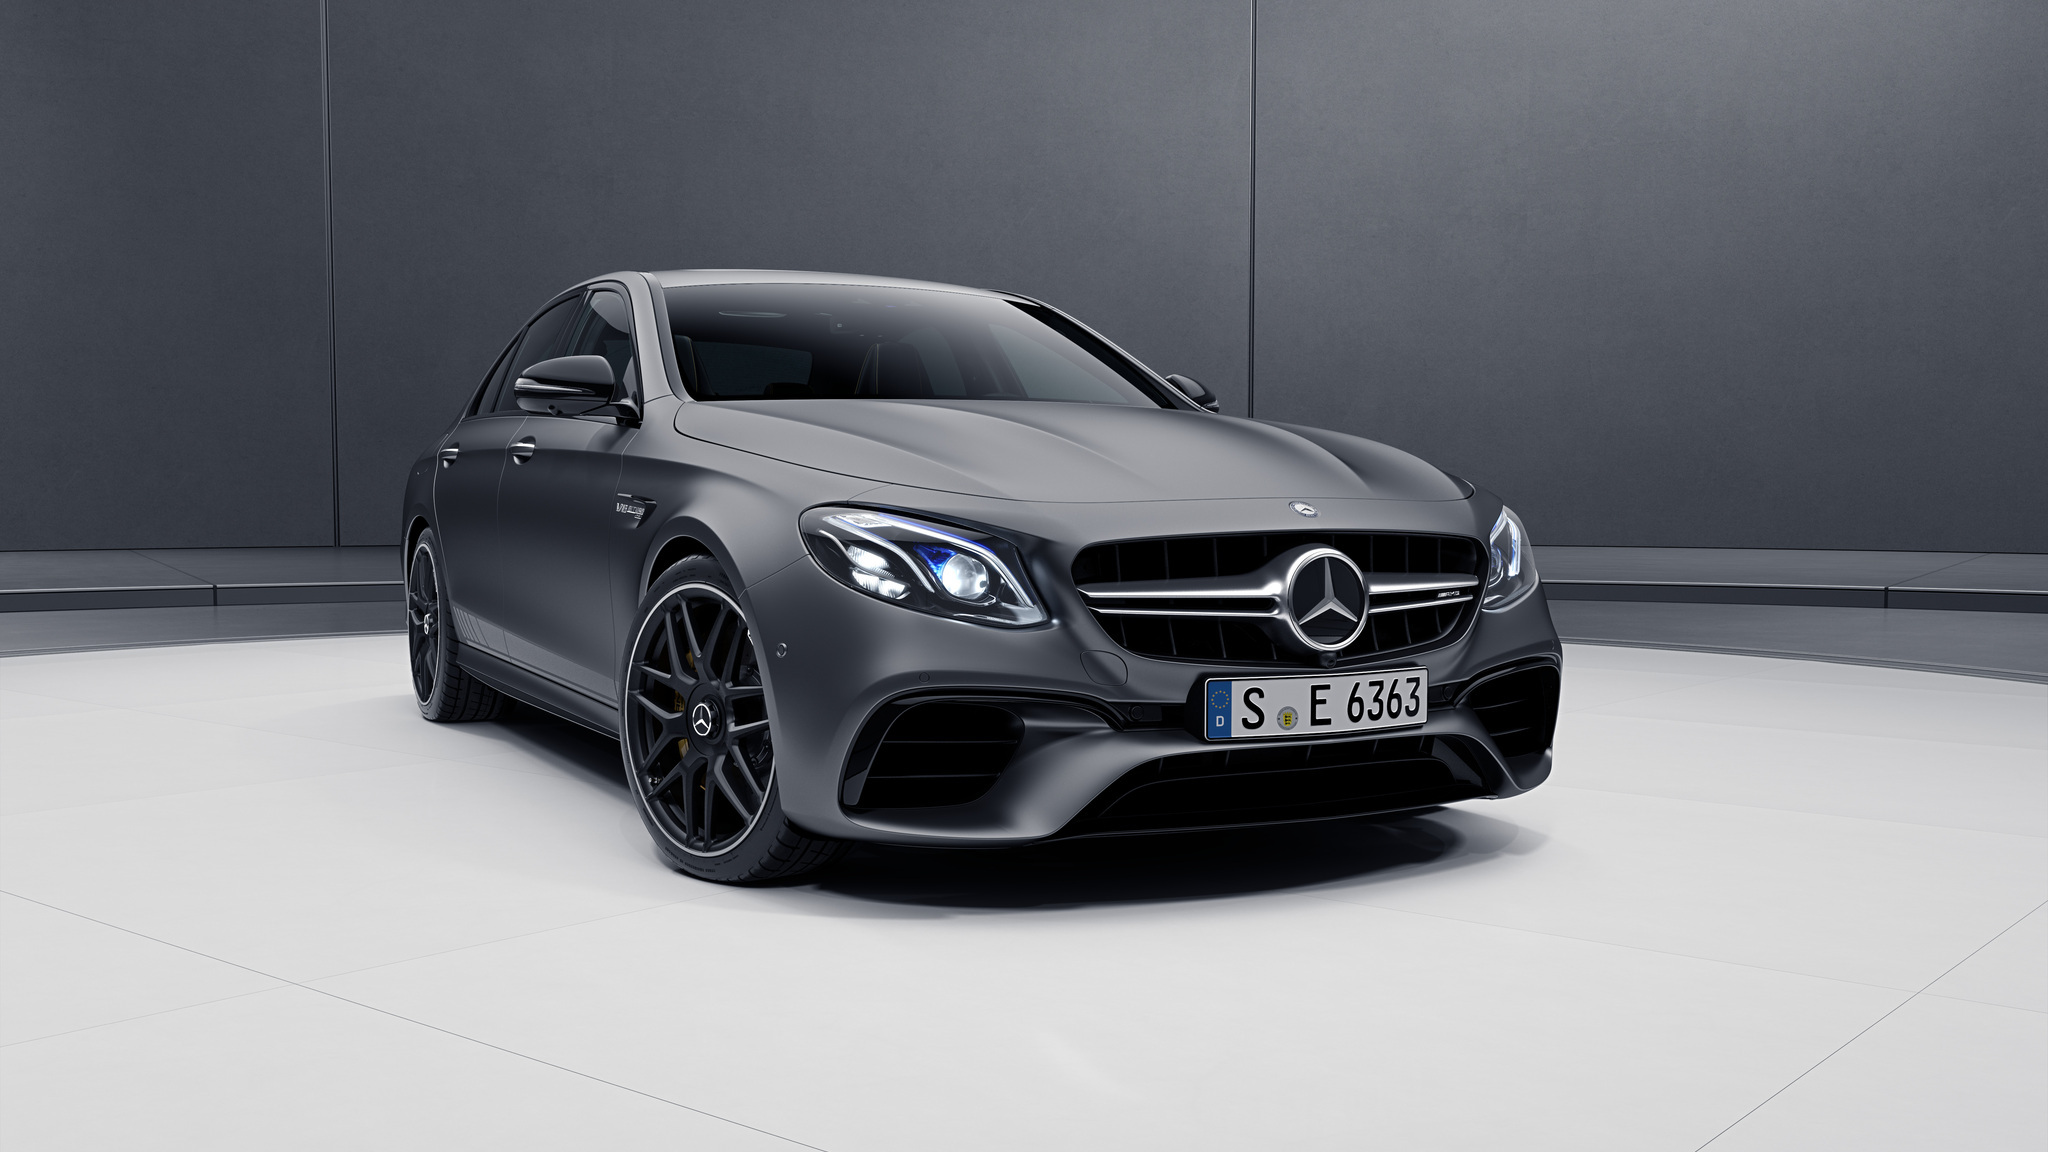 S 63 Amg 2017 >> Mercedes-AMG E 63 S AMG 4MATIC+ Edition 1 - Who dares? - AMG In Years